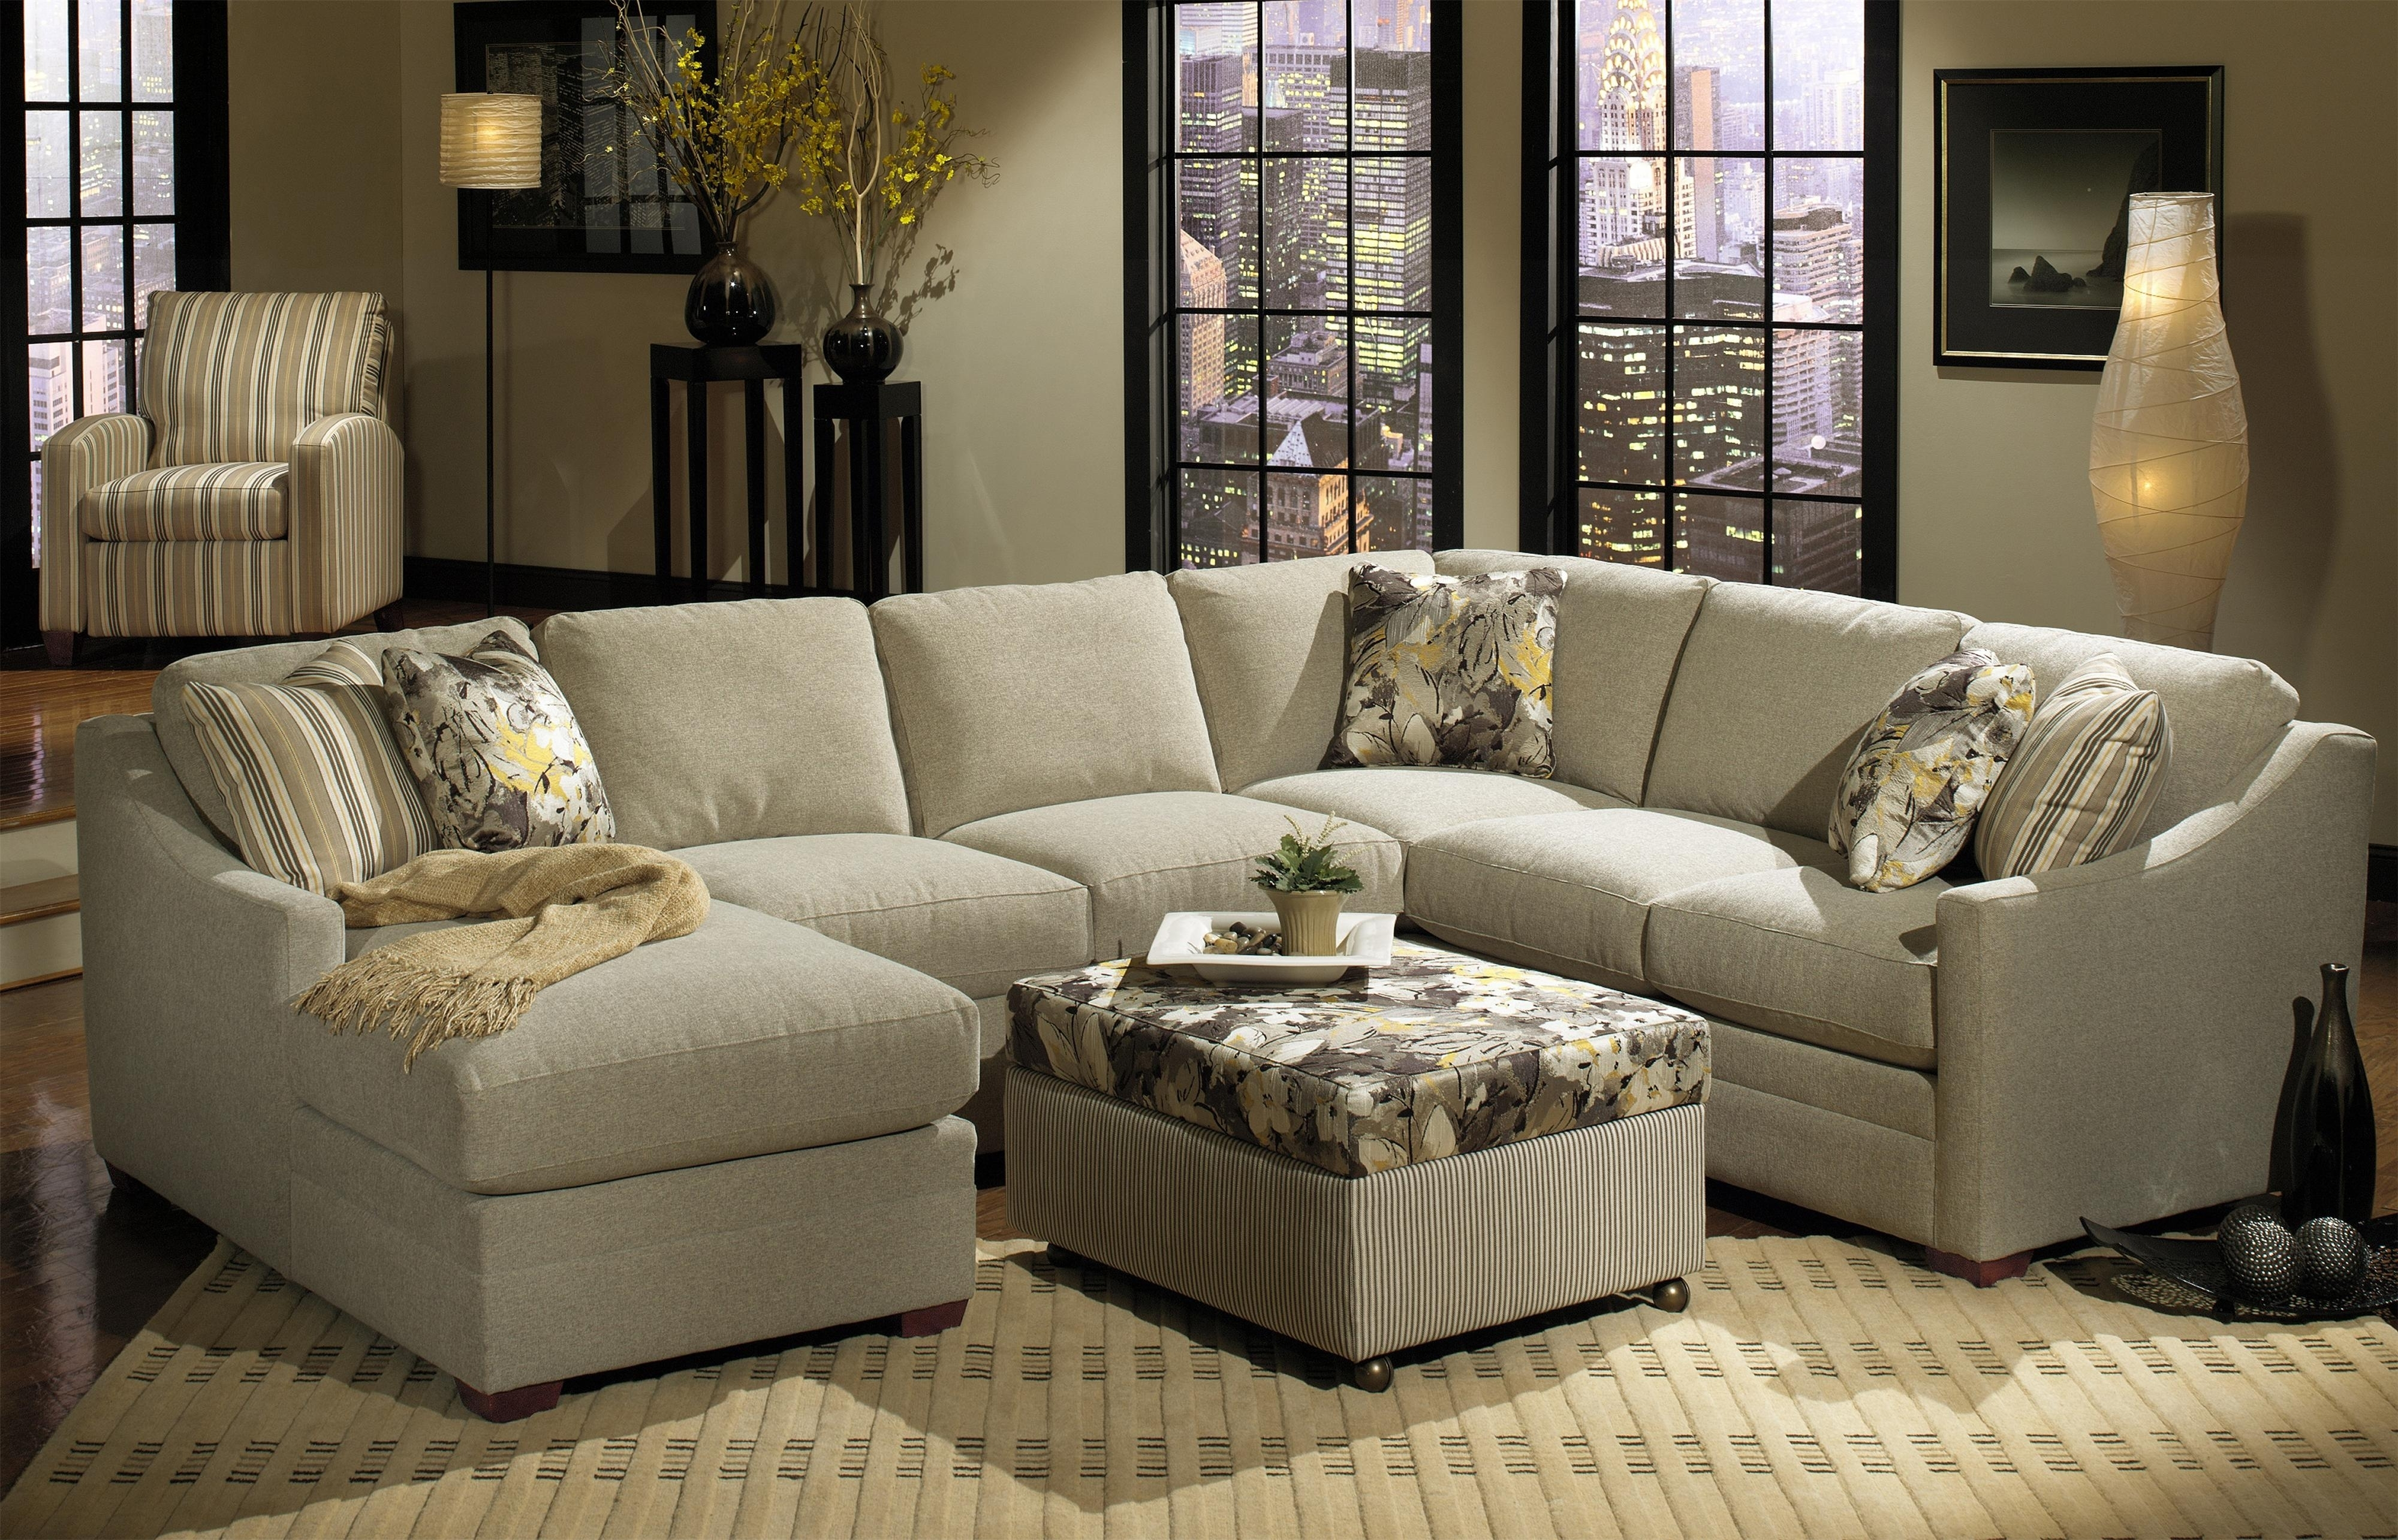 Craftsman Sectional Sofa | Ezhandui with regard to Craftsman Sectional Sofas (Image 3 of 10)